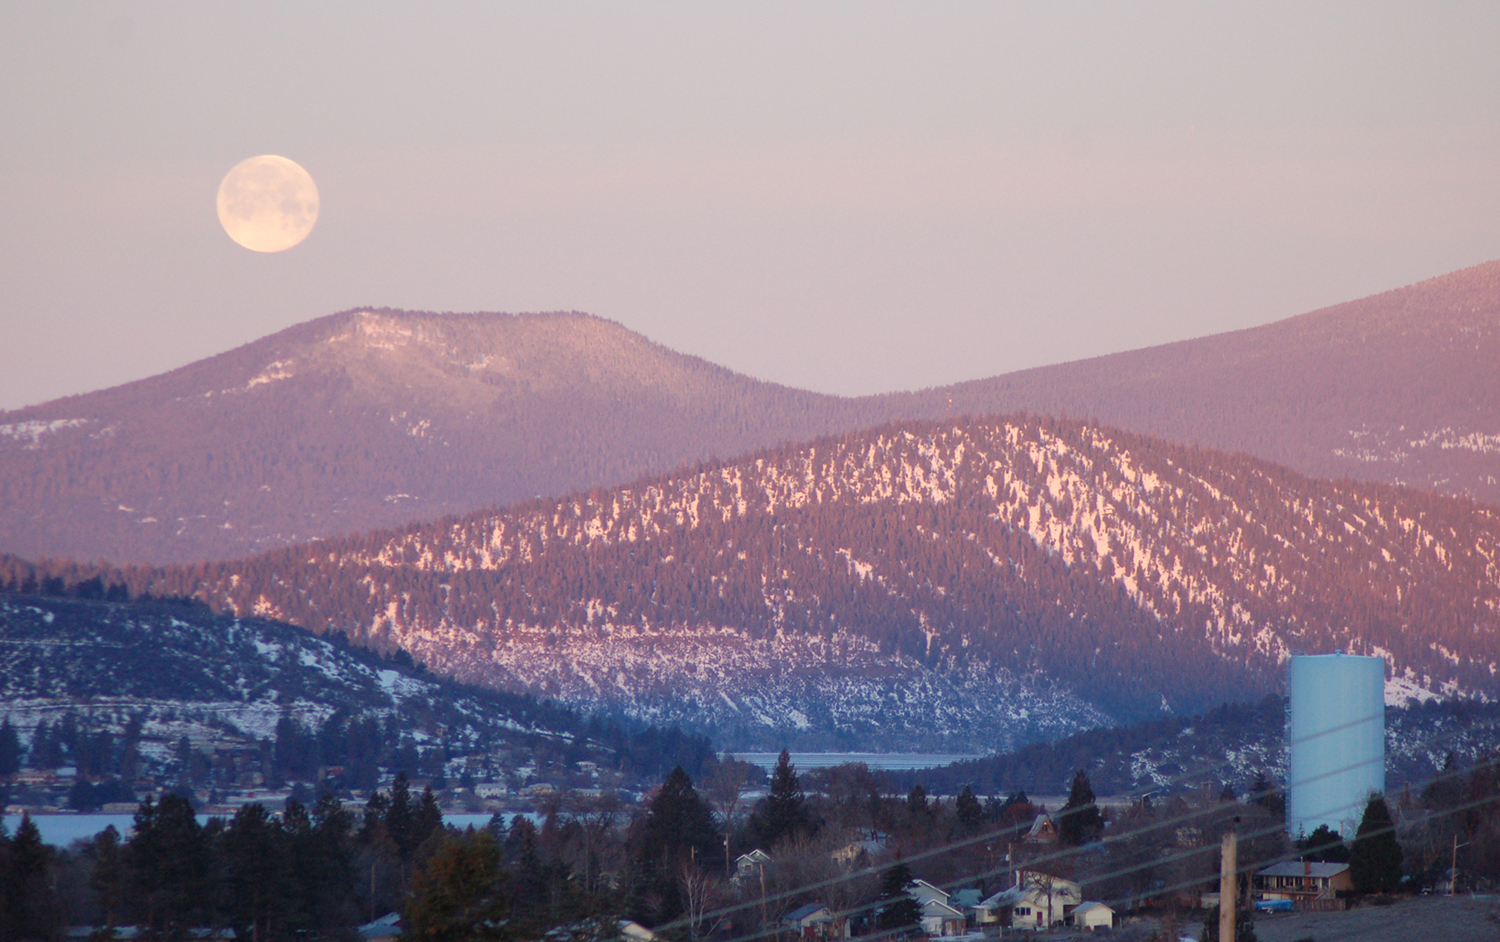 A full moon sets over Little Aspen Butte west of Klamath Falls in this February 2017 photo. An astronomy event at the Klamath County Museum on Sunday, Feb. 4, will provide a view of the moon similar to that seen here. (Klamath County Museum)